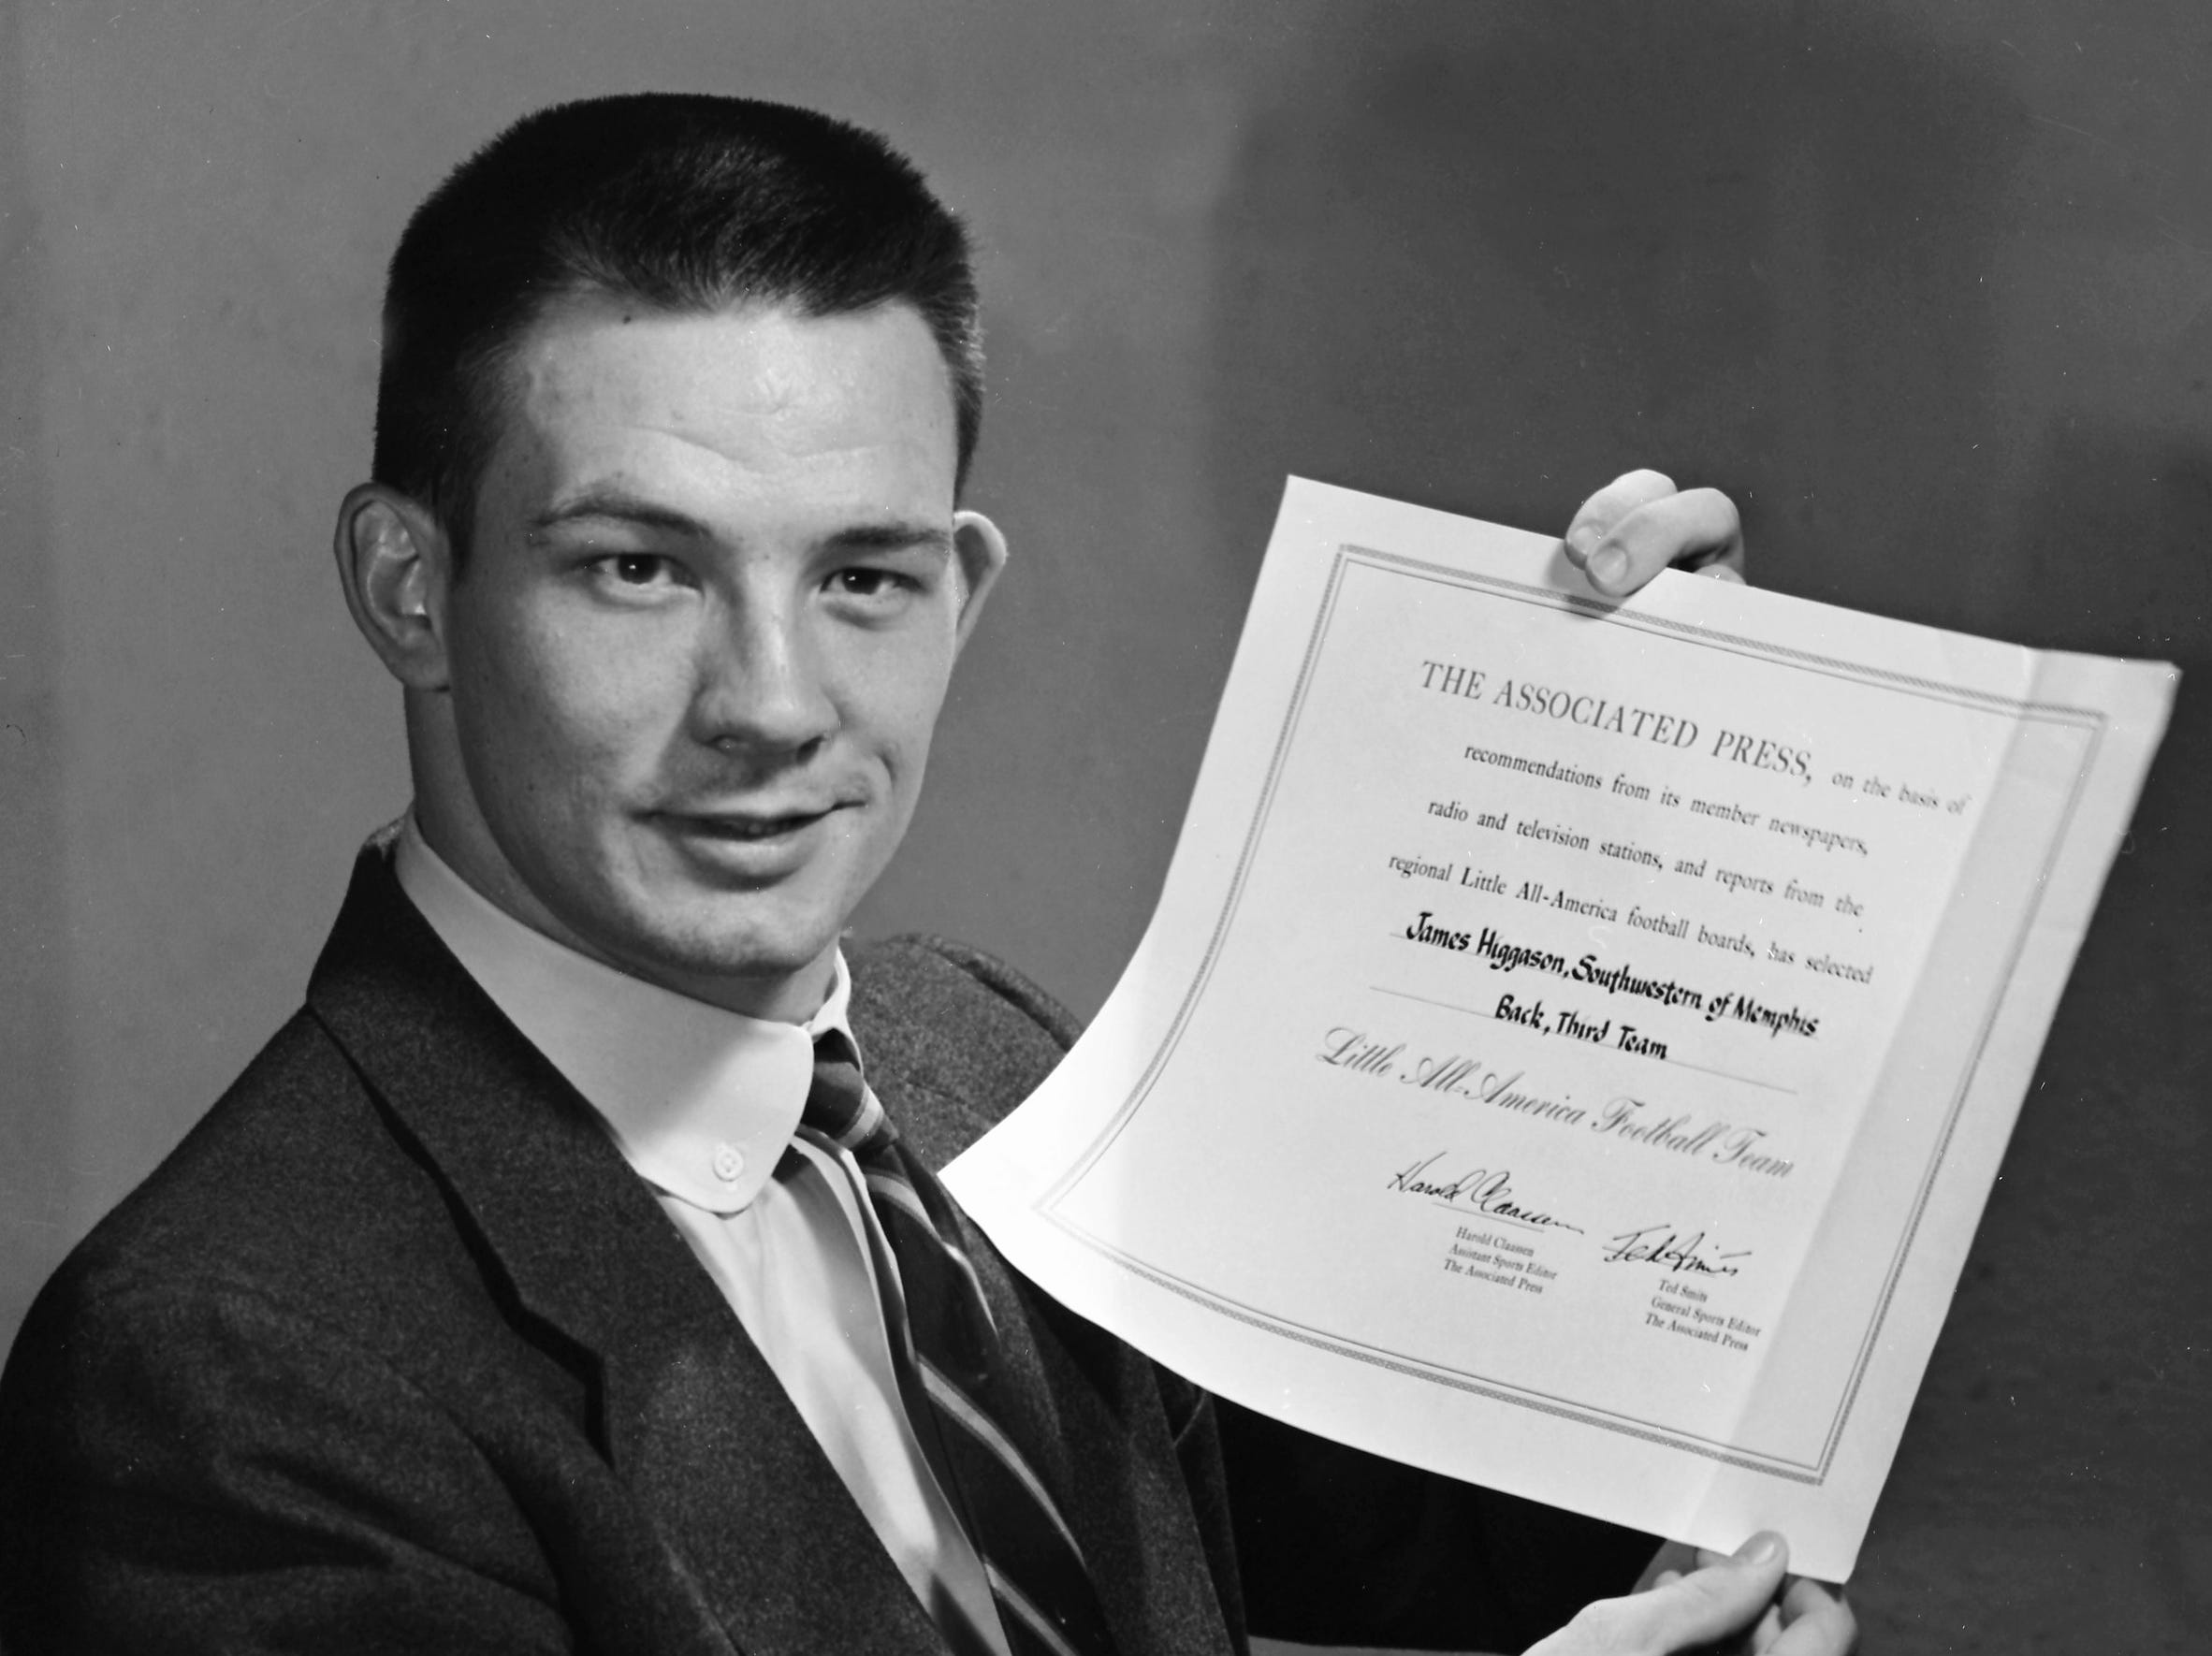 Jimmy Higgason, Southwestern halfback, who made the Associated Press' third team Little All-American squad, proudly displays the certificate he received in January 1956.  Higgason's home is in Pine Bluff, AR.